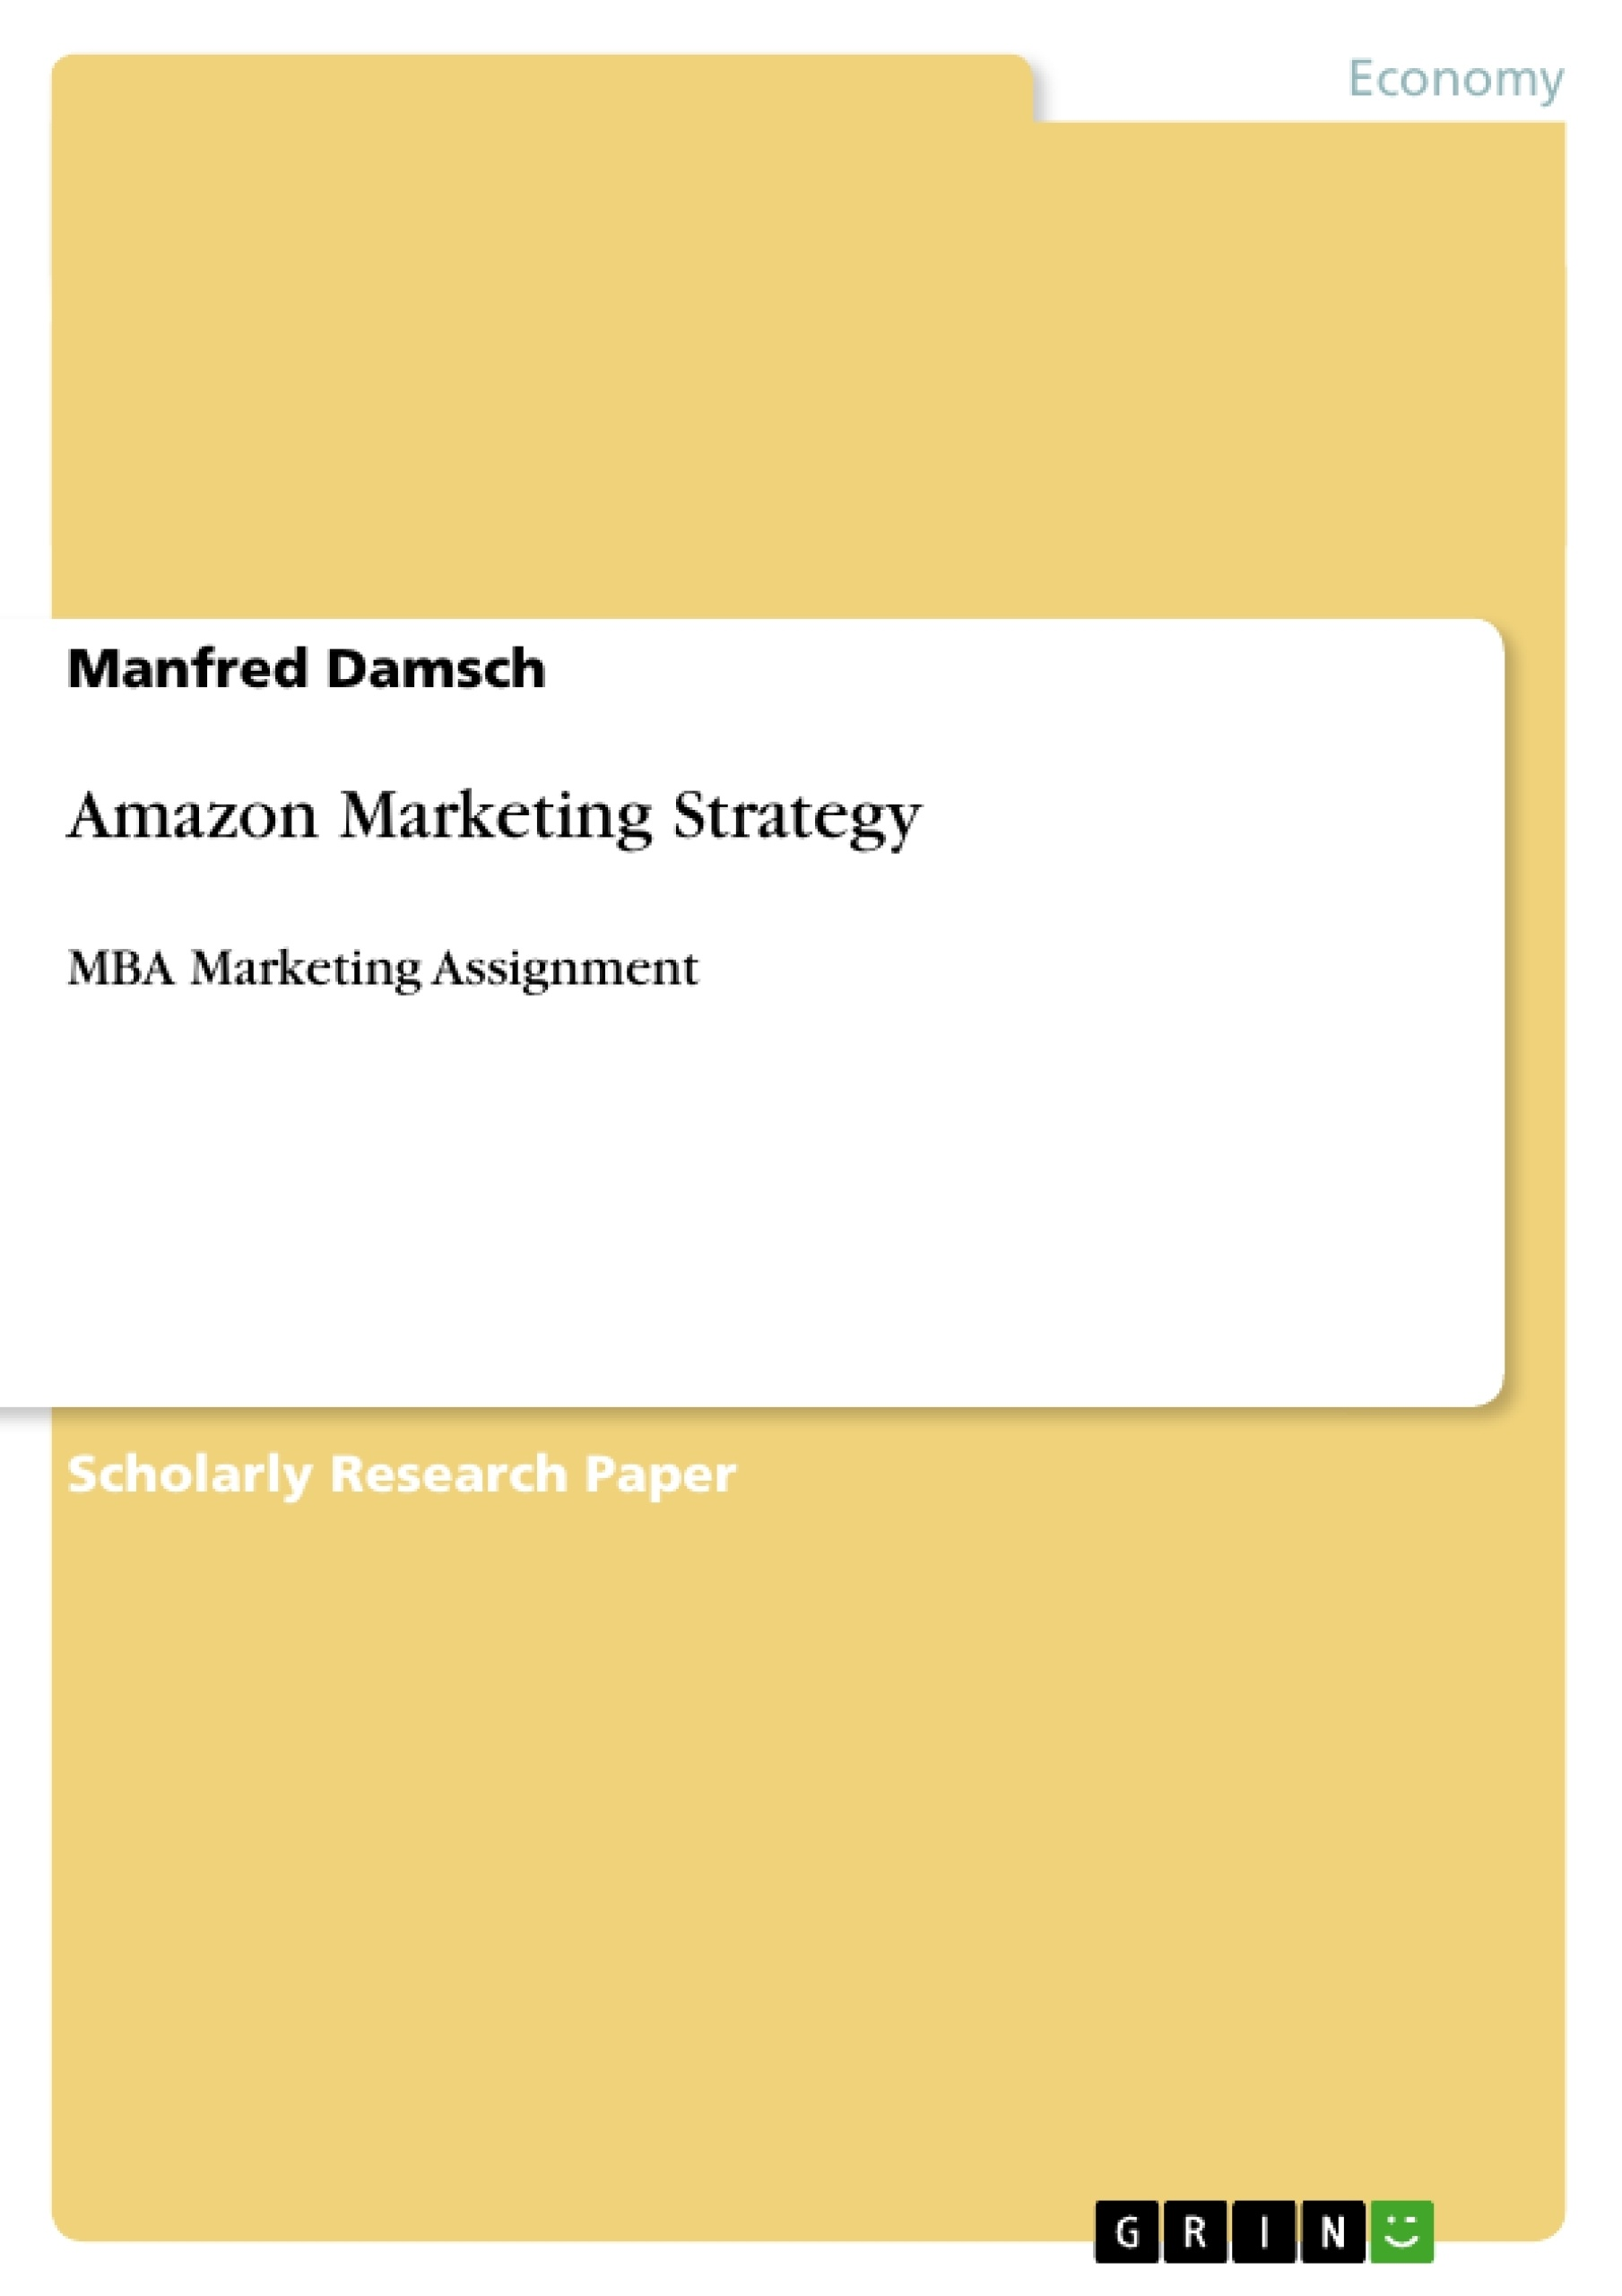 amazons marketing strategy essay